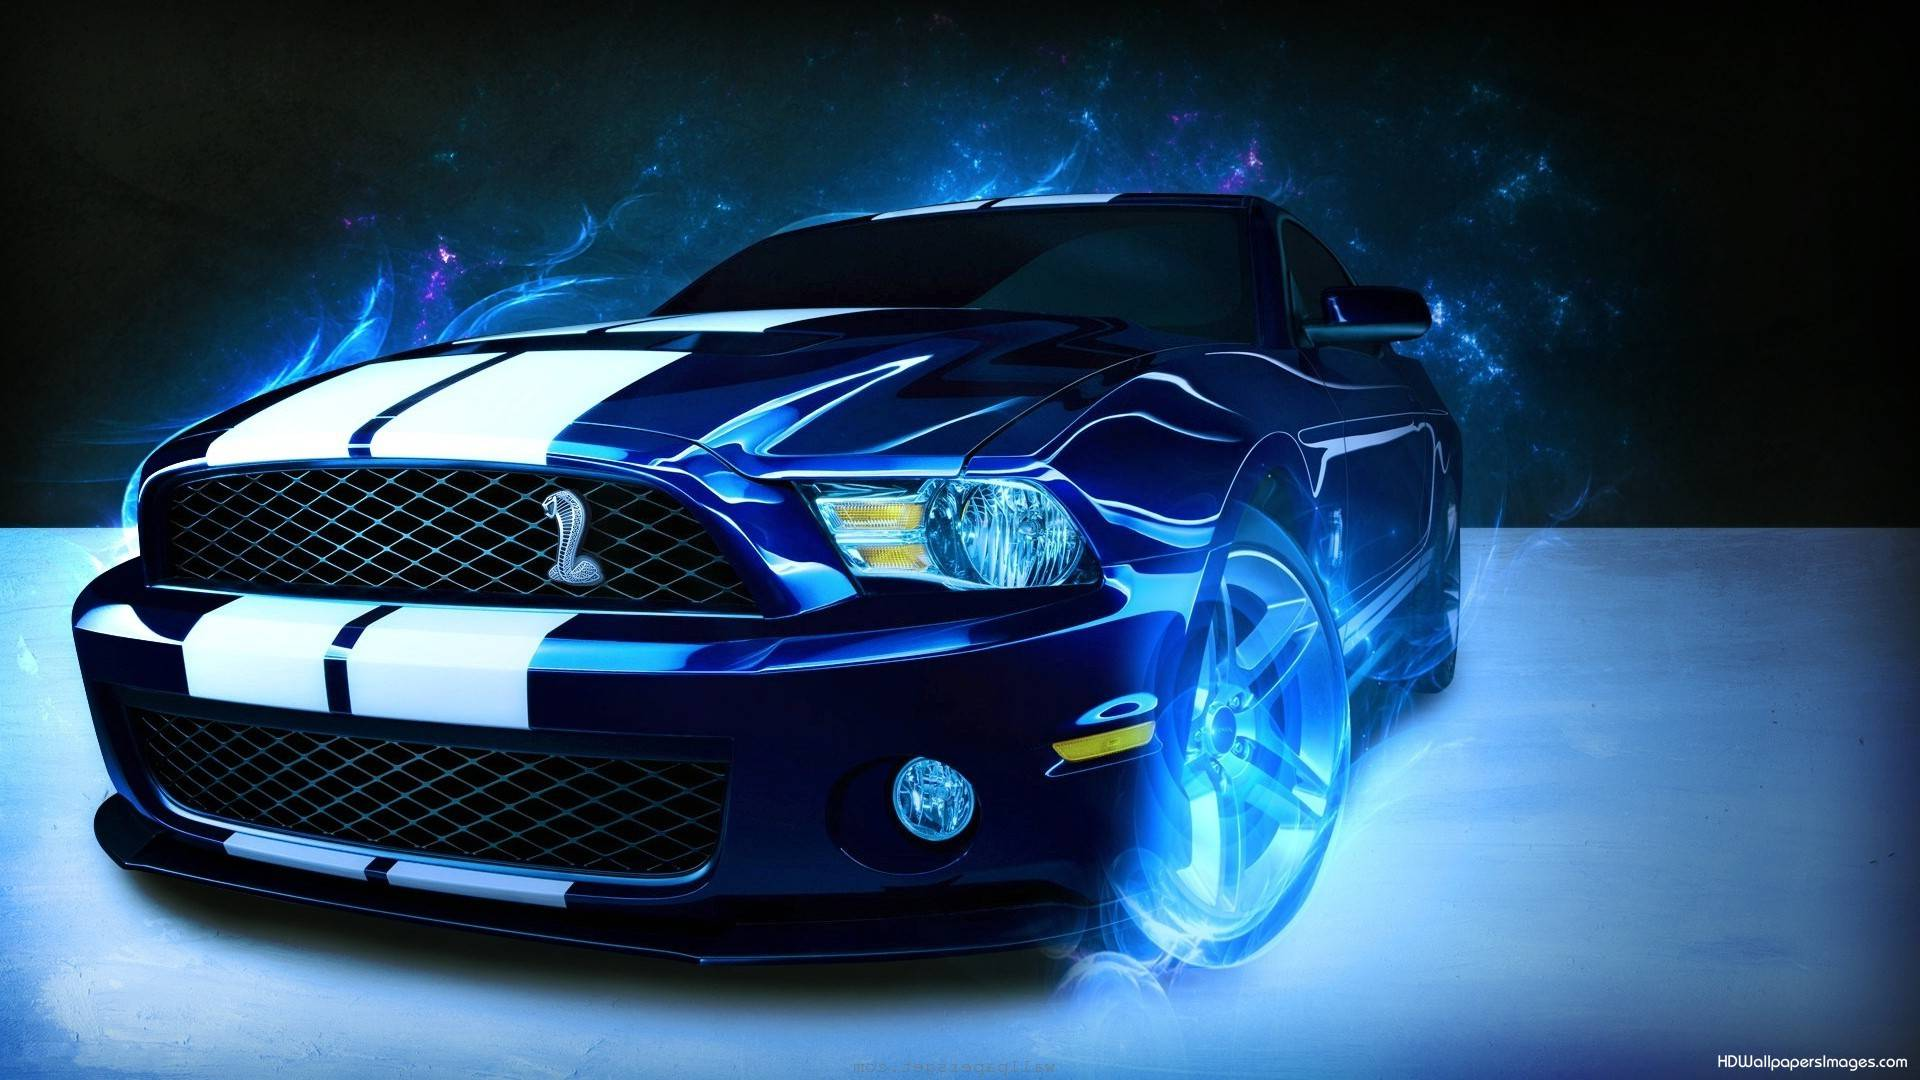 Hd Mustang Wallpapers Wallpapersafari